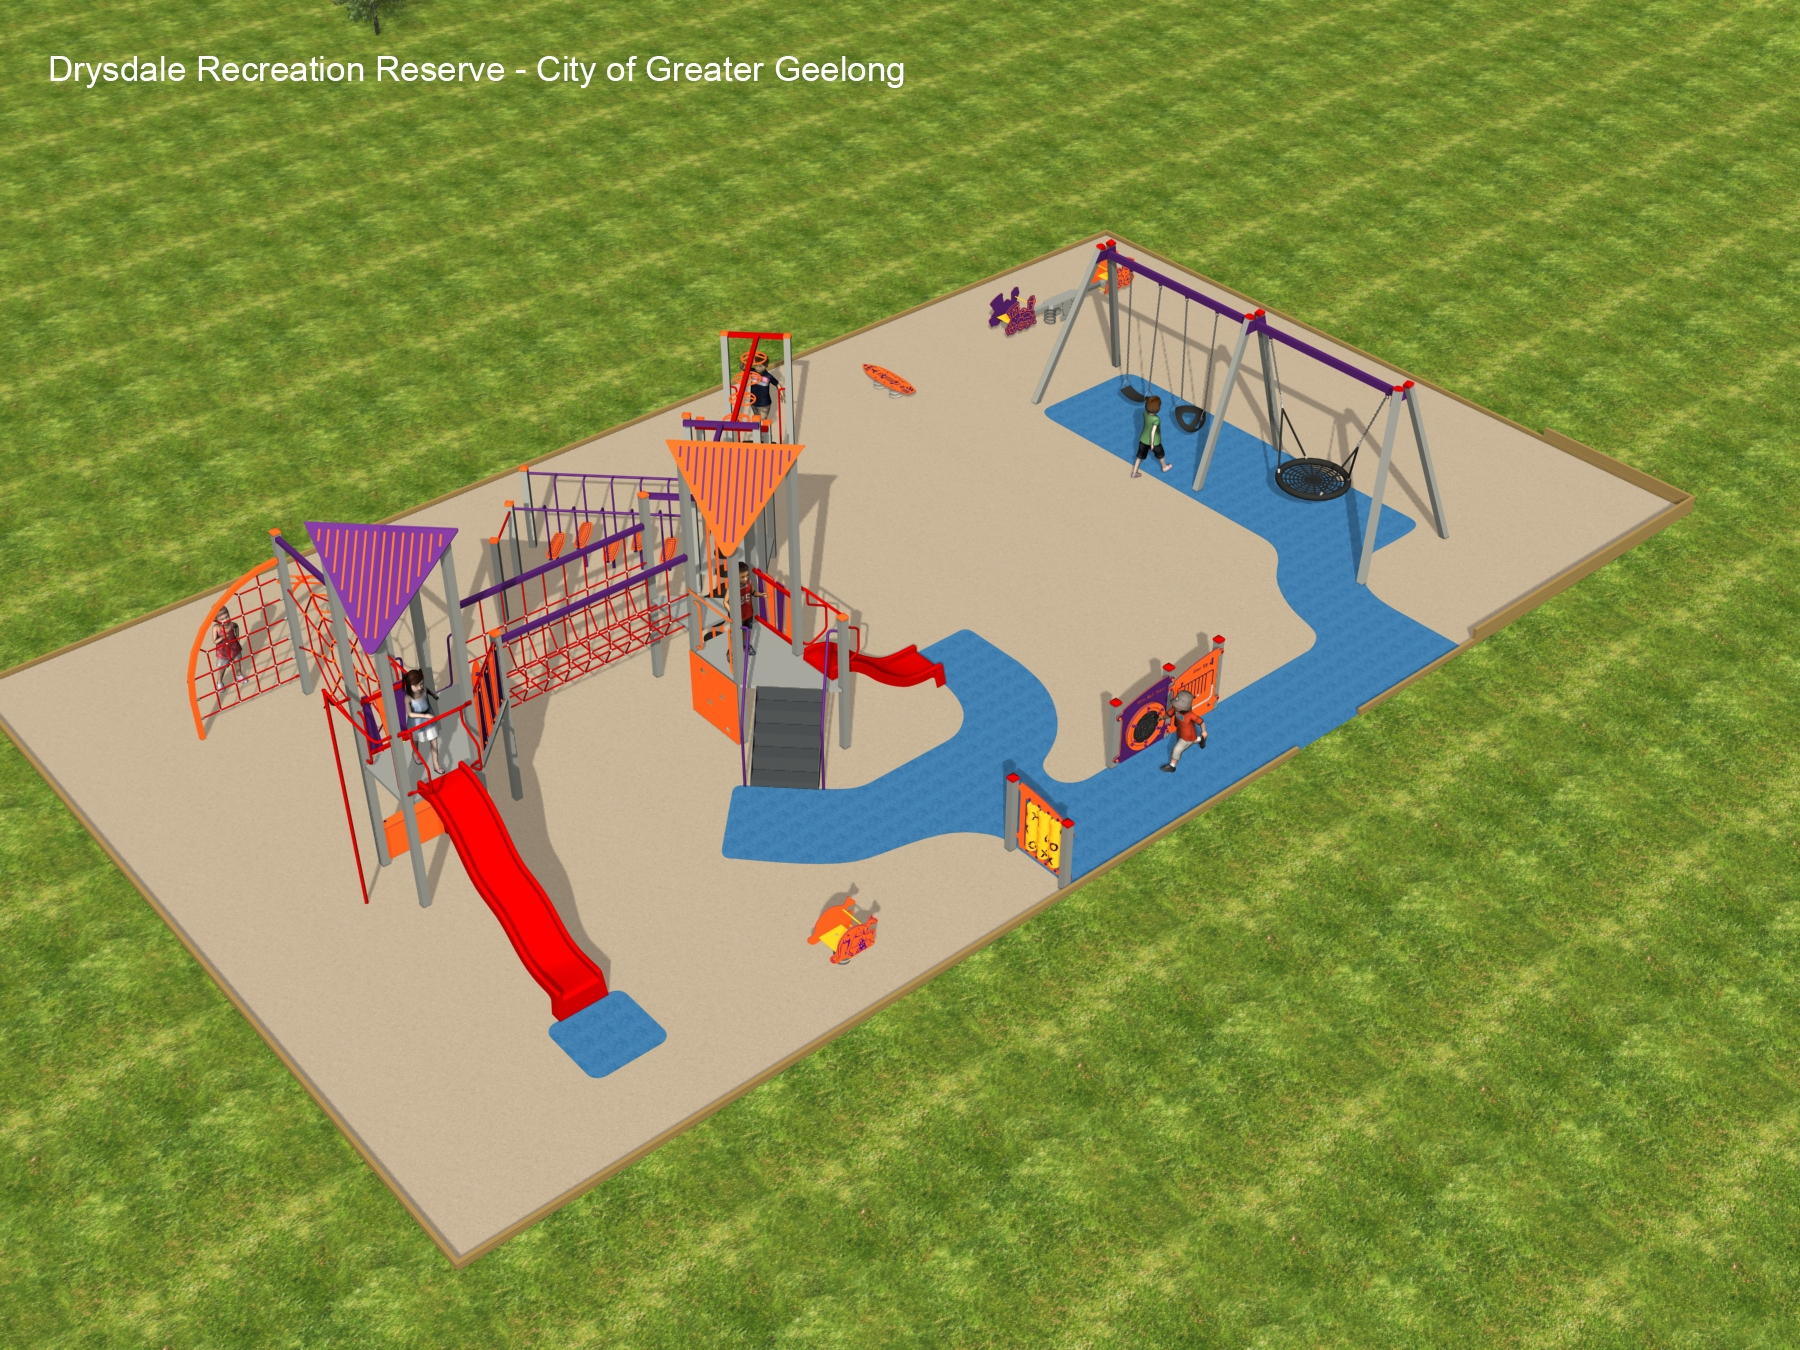 Drysdale Reserve - proposed playground design